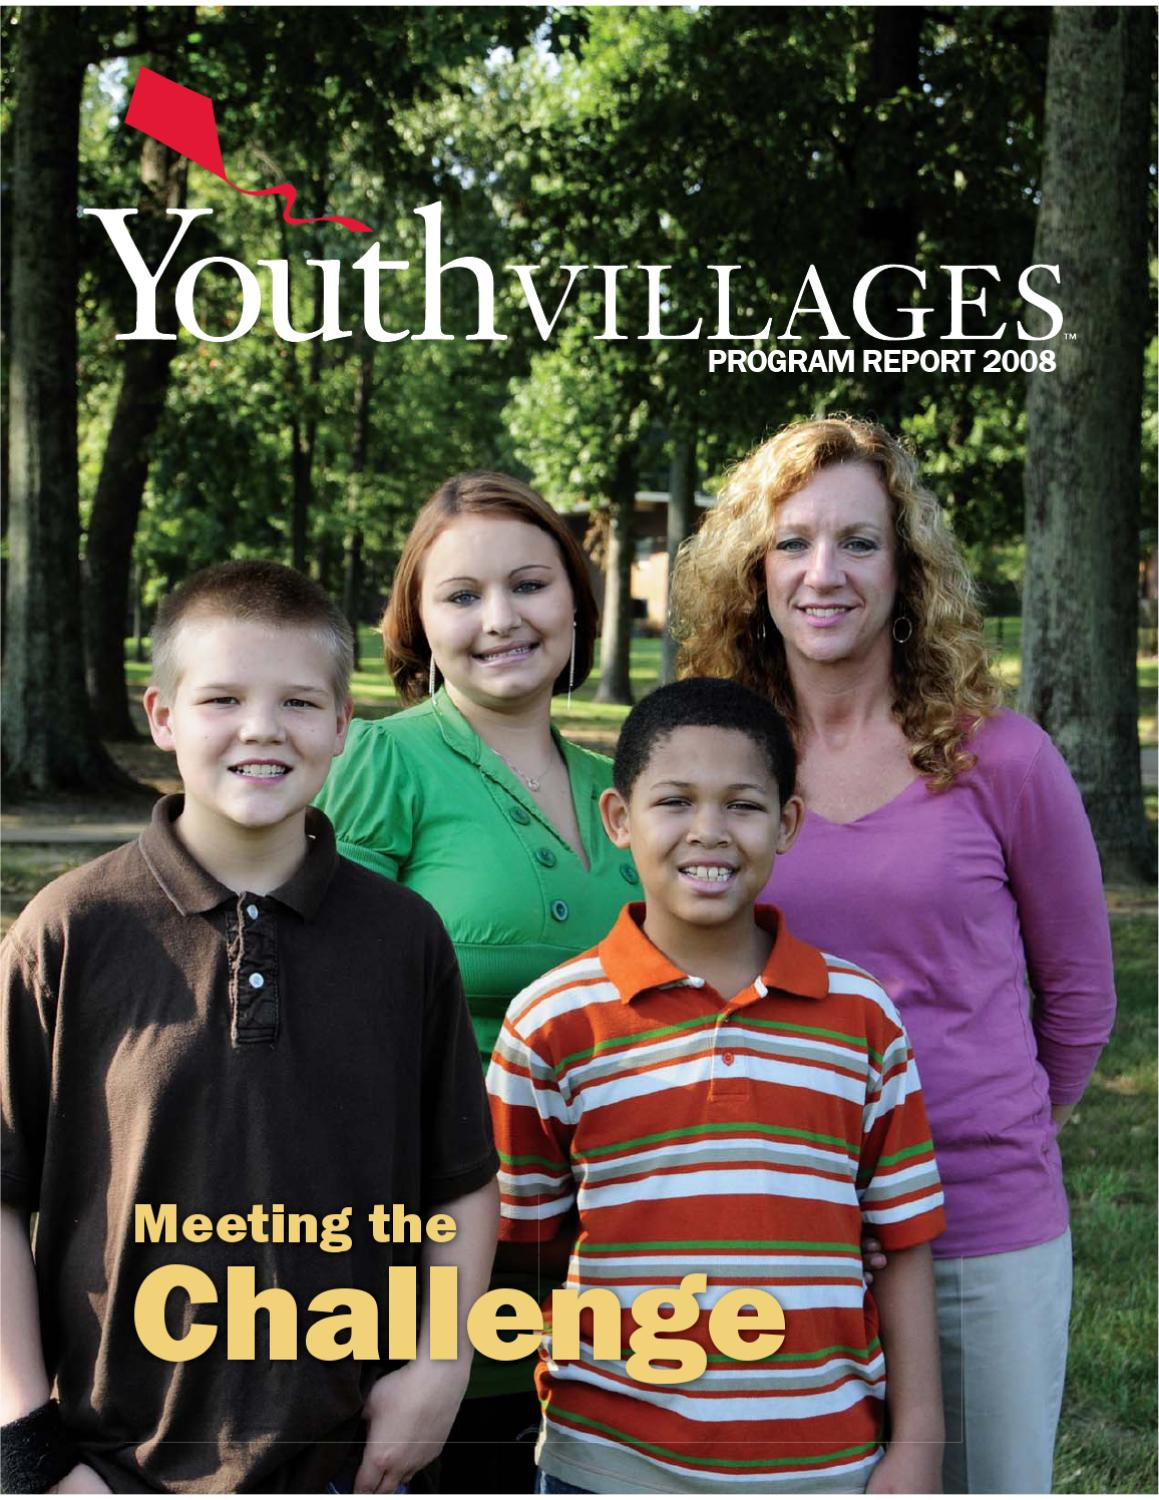 Youth Villages 2008 Program Report by Youth Villages - issuu